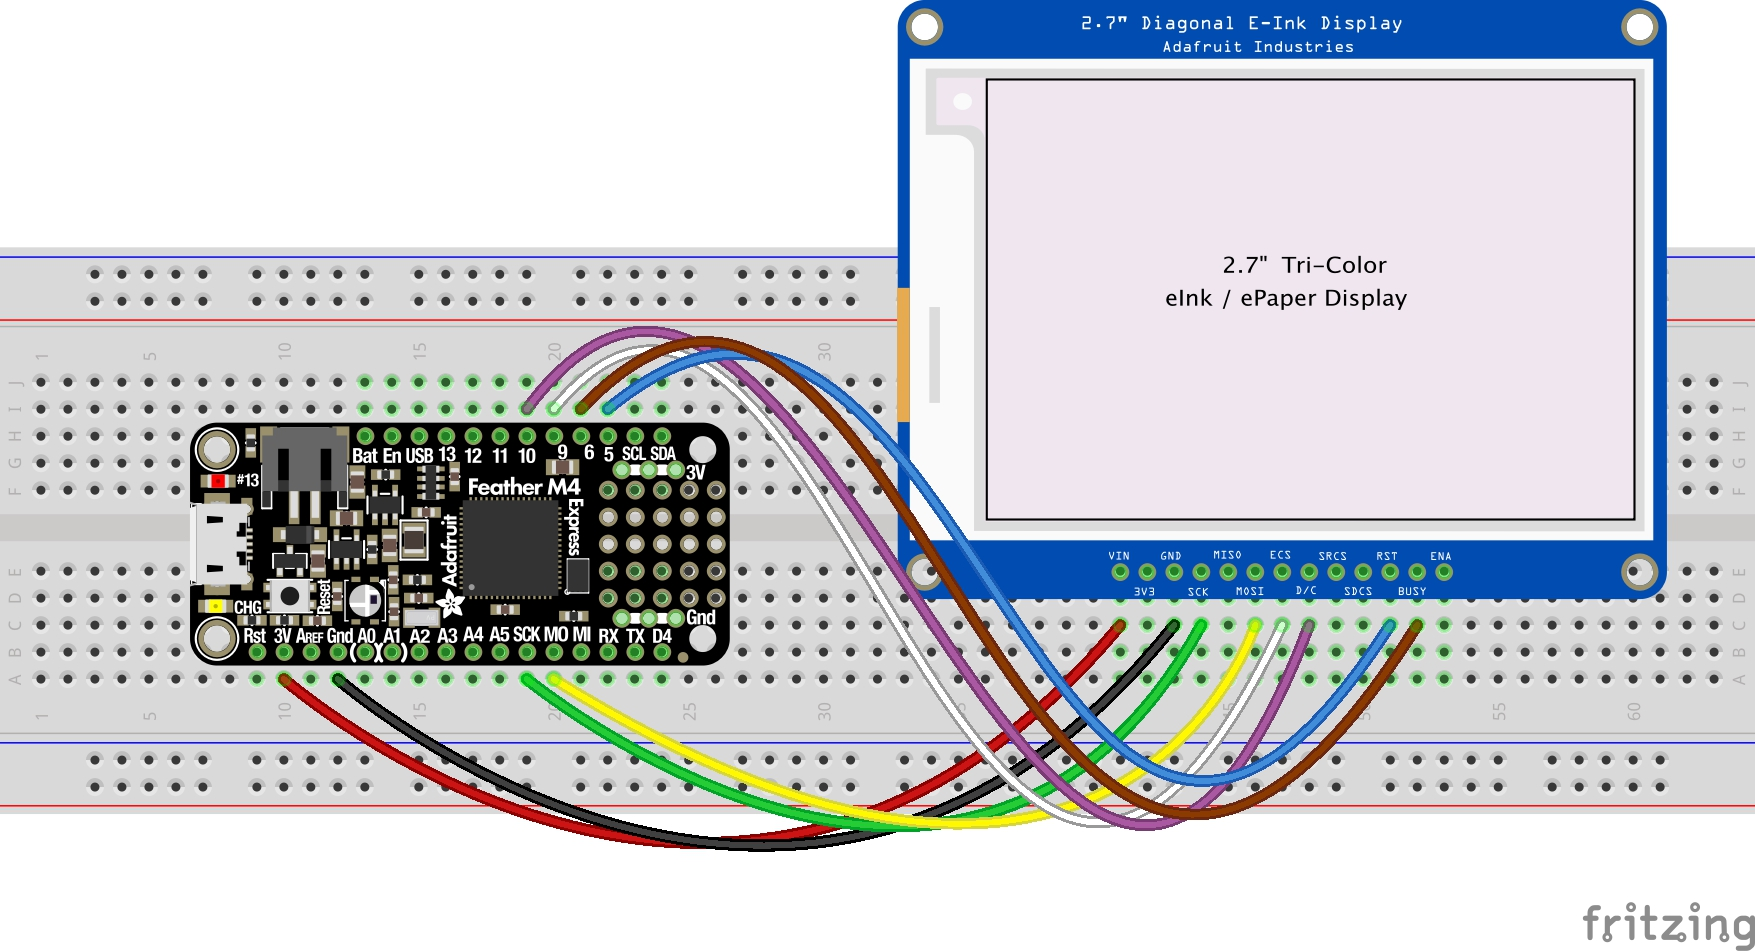 adafruit_products_epd_displayio_bb.jpg